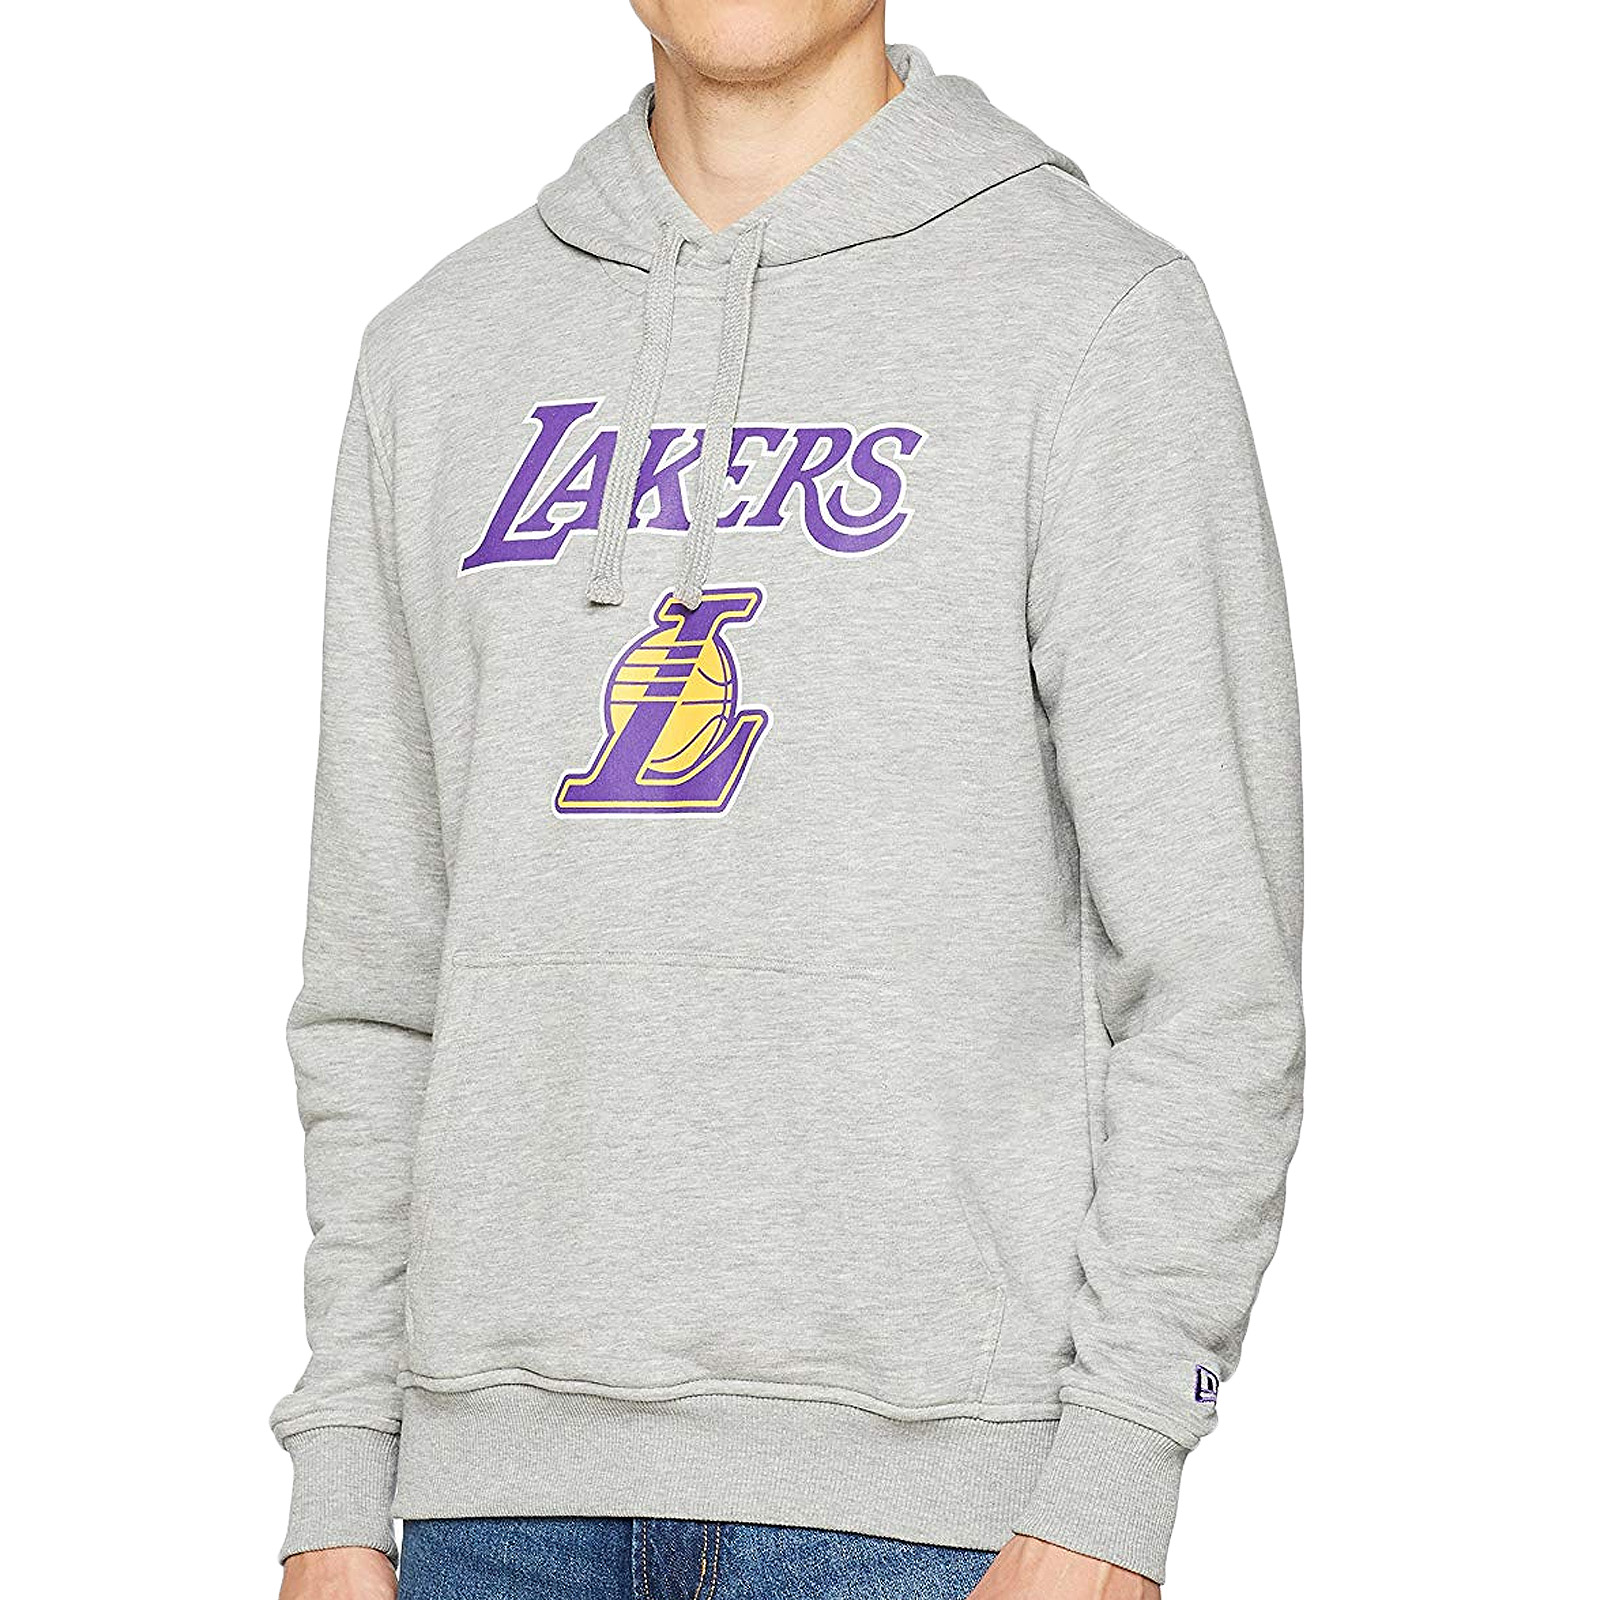 info for c6091 a4e59 Details about New Era Mens NBA Basketball LA Lakers Pullover Hoody Hoodie  Jumper - Grey - S